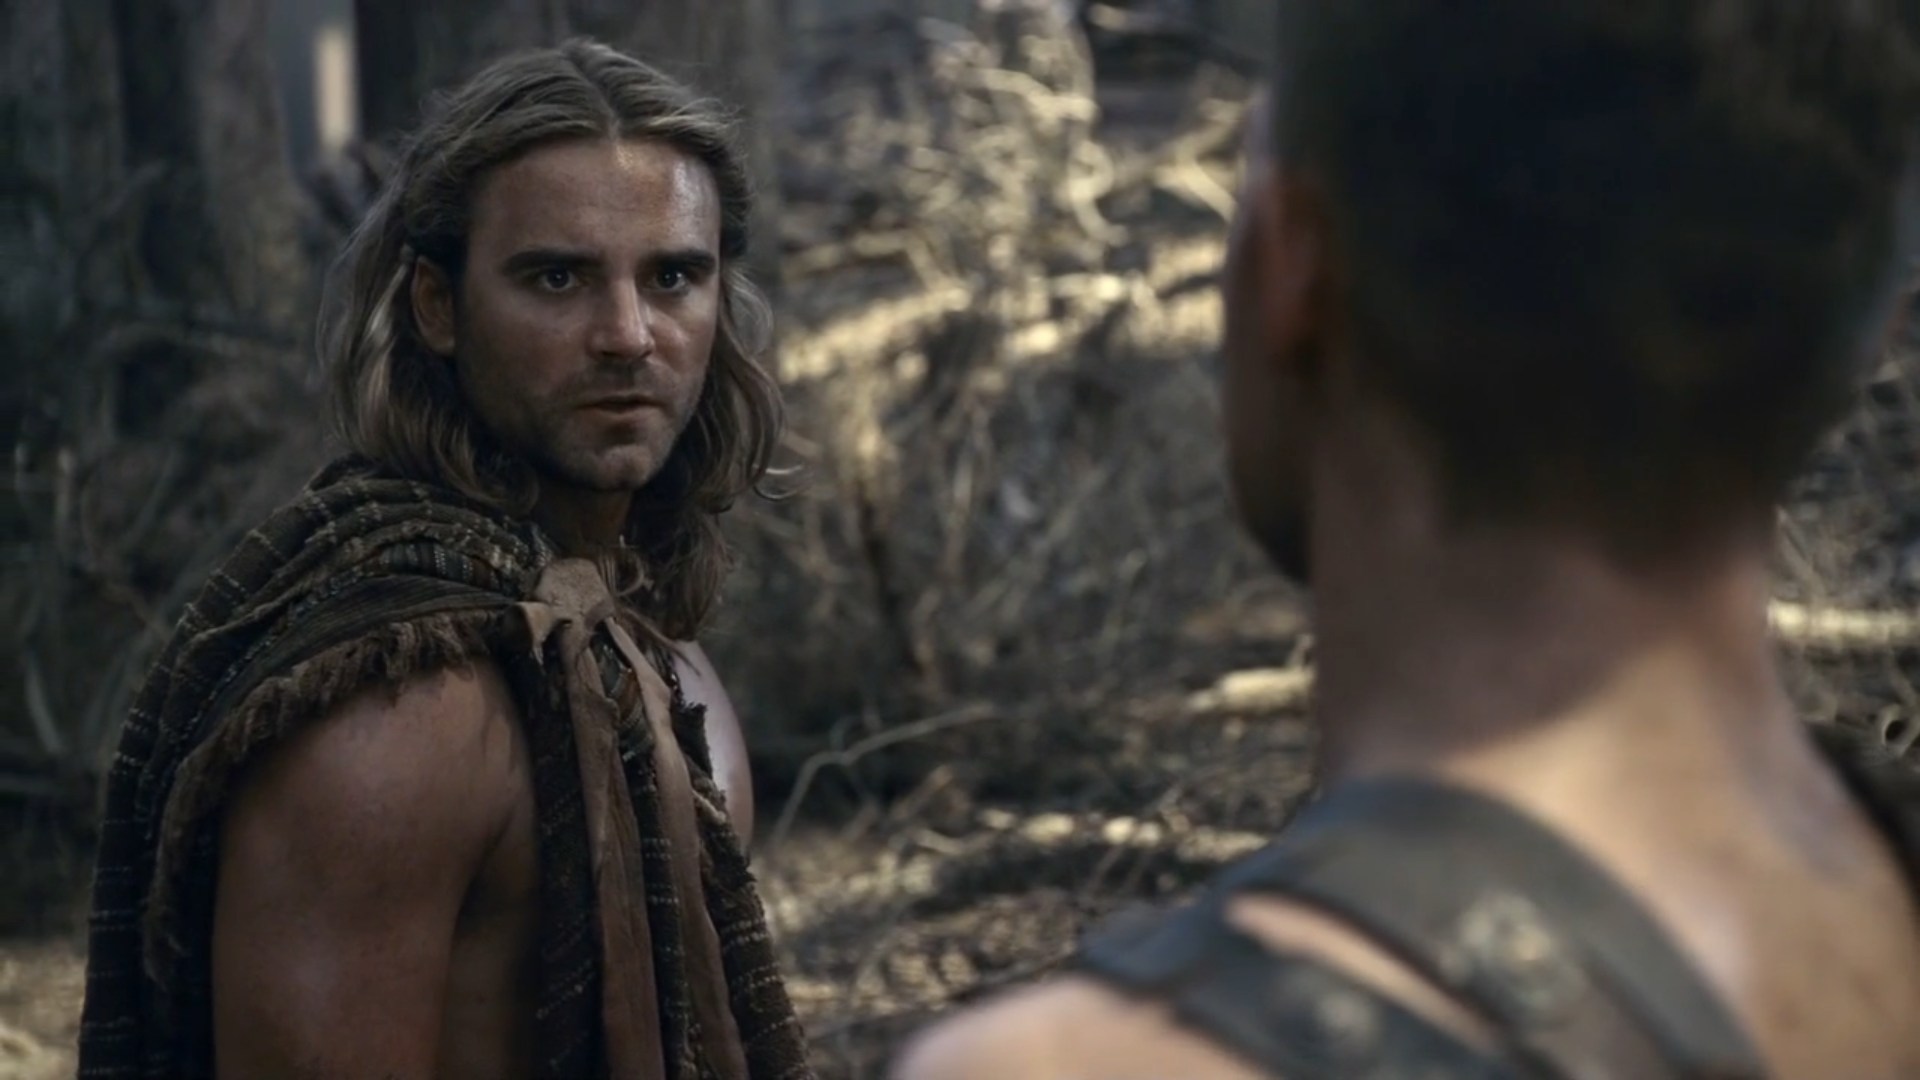 Gannicus - bad motherfucker